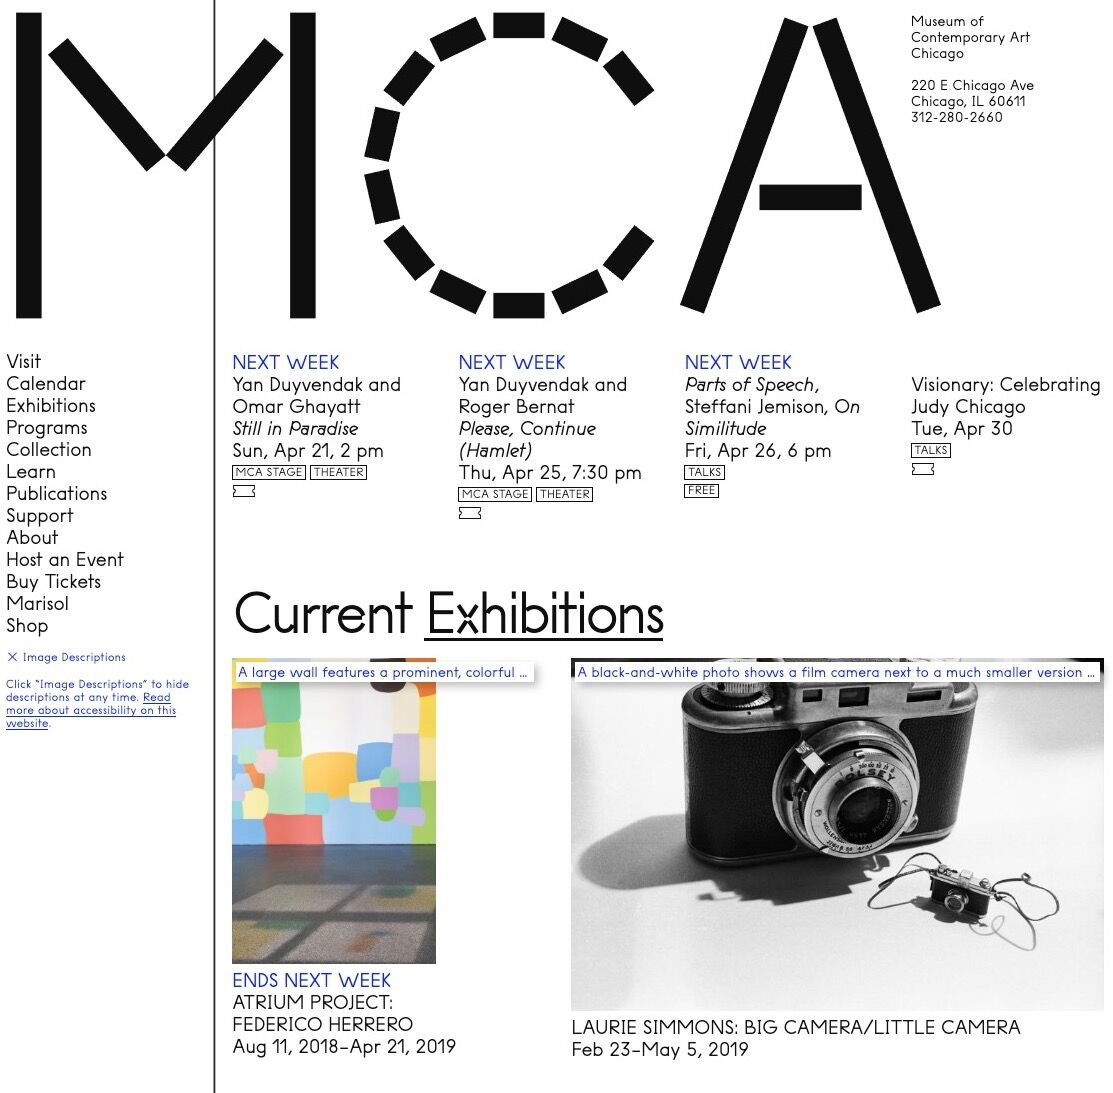 Details of the MCA's homepage showcasing Coyote image descriptions. © MCA Chicago.